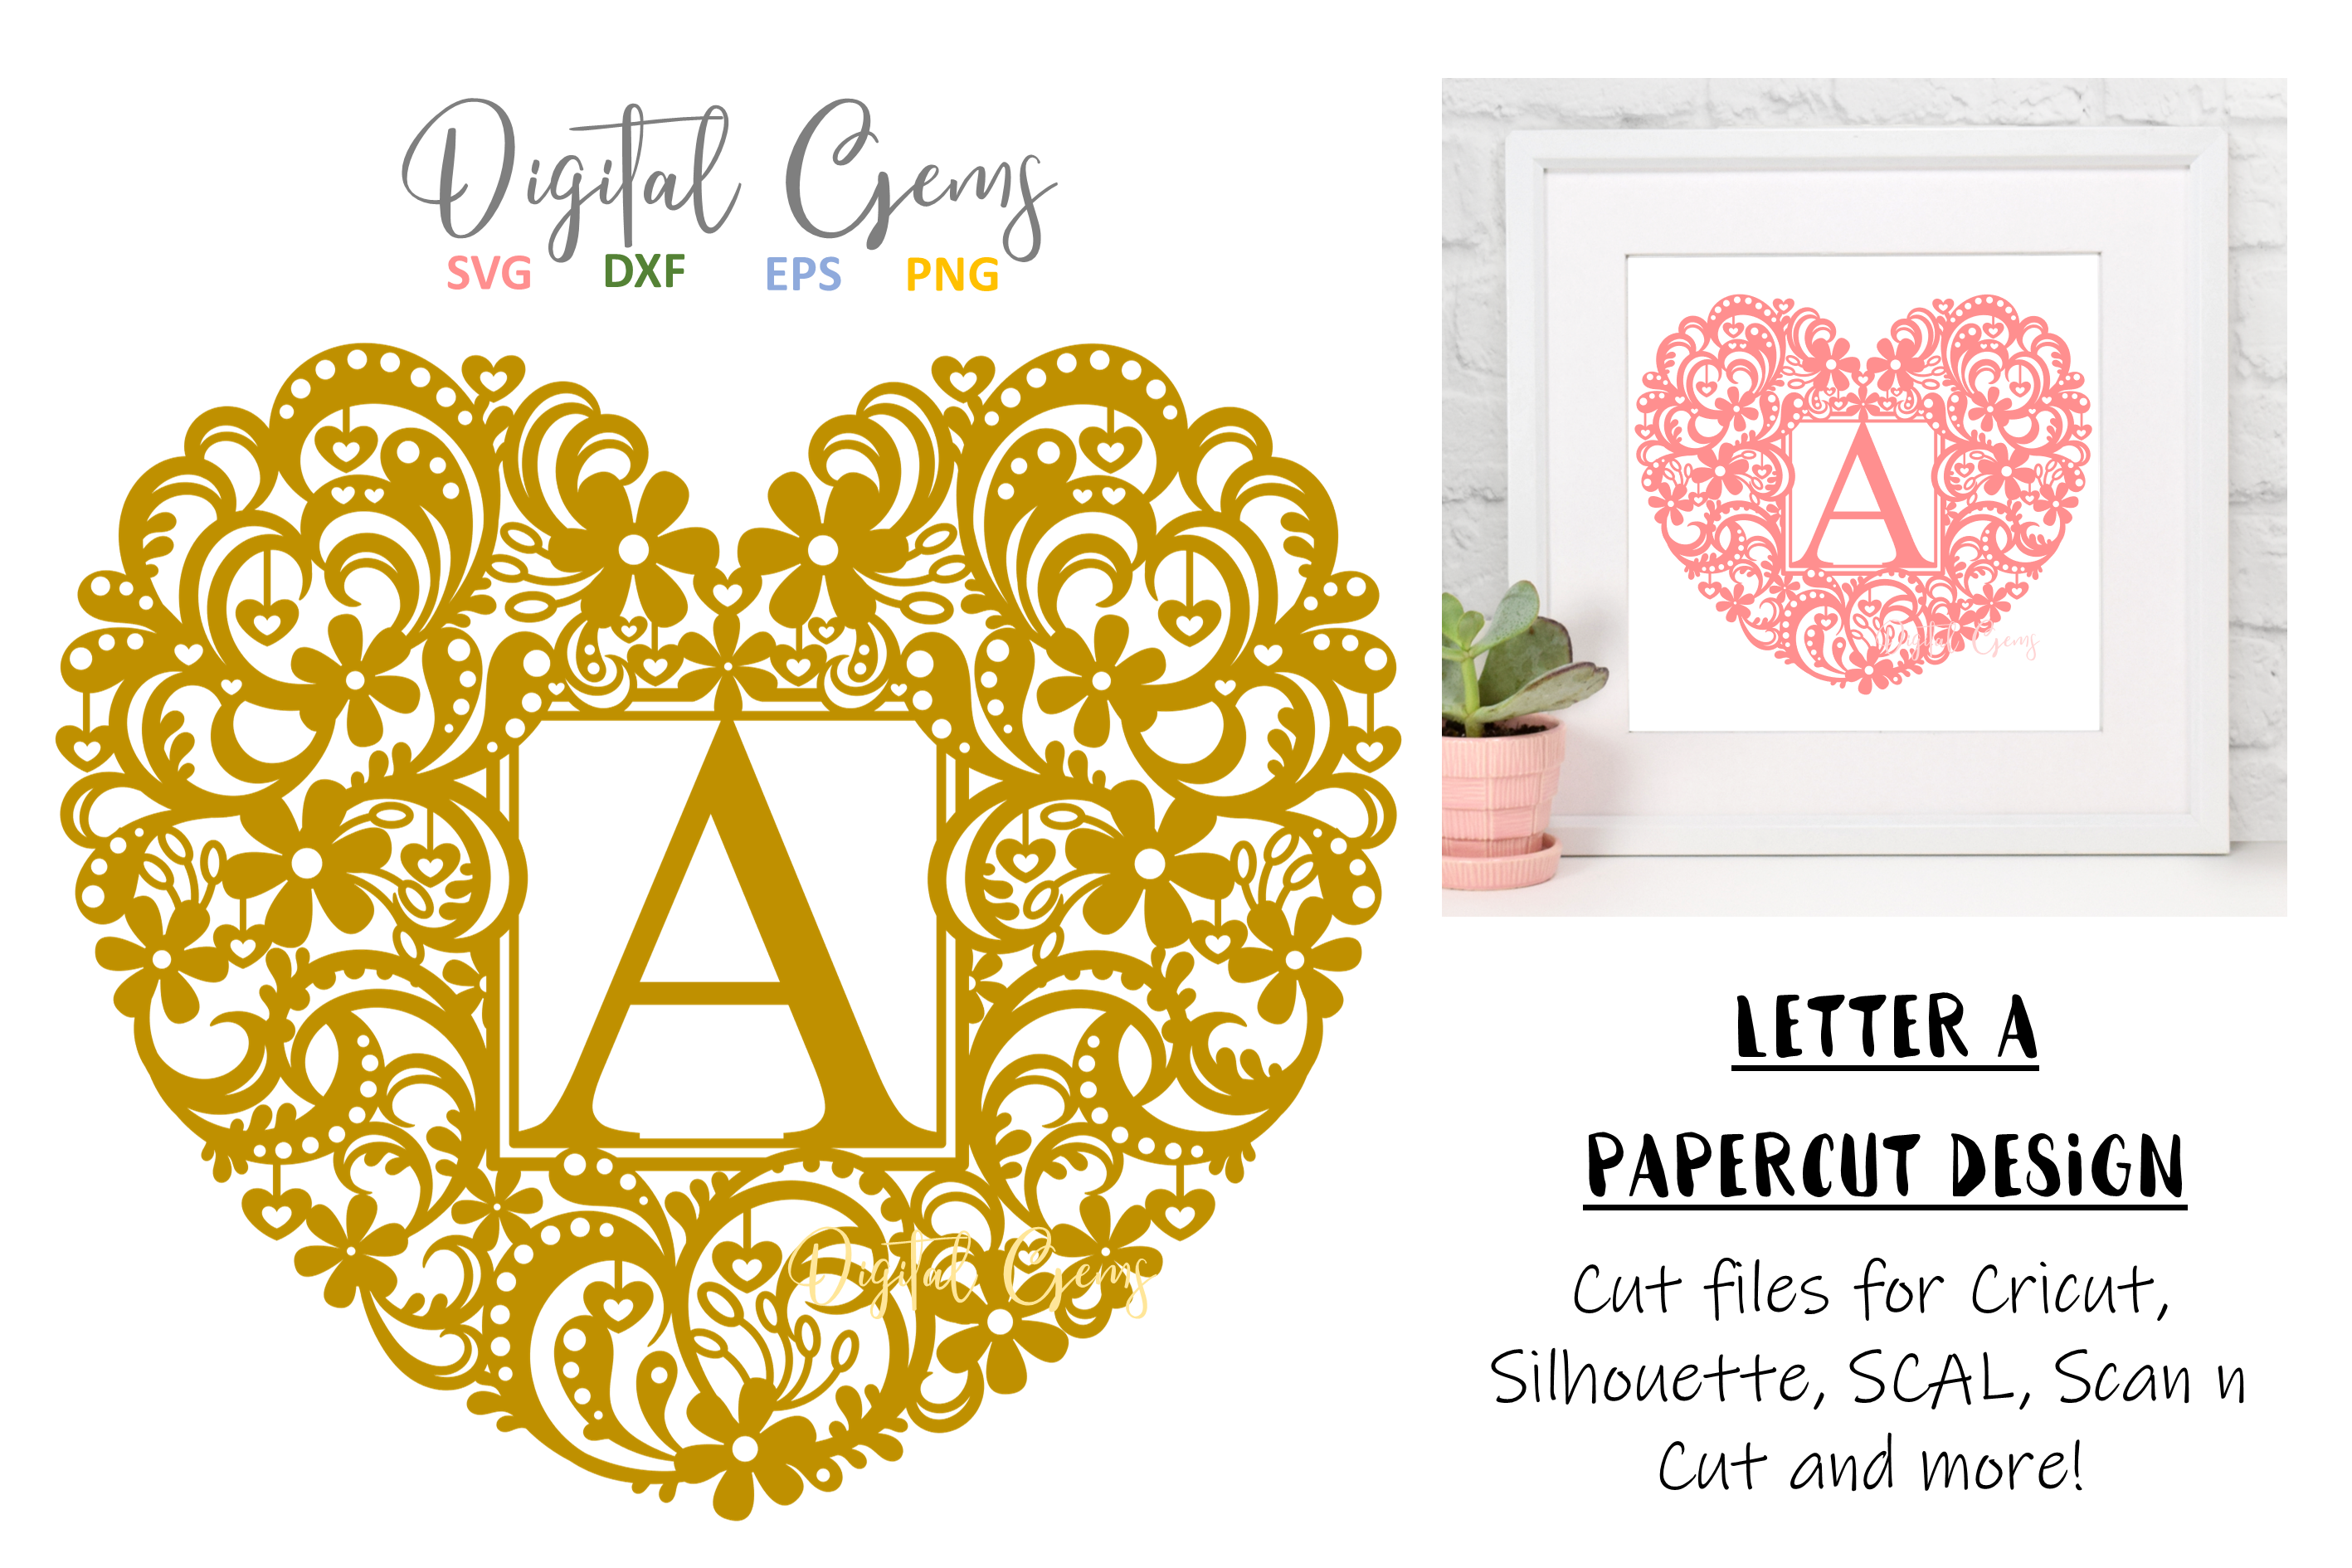 Letter A paper cut design. SVG / DXF / EPS / PNG files example image 1